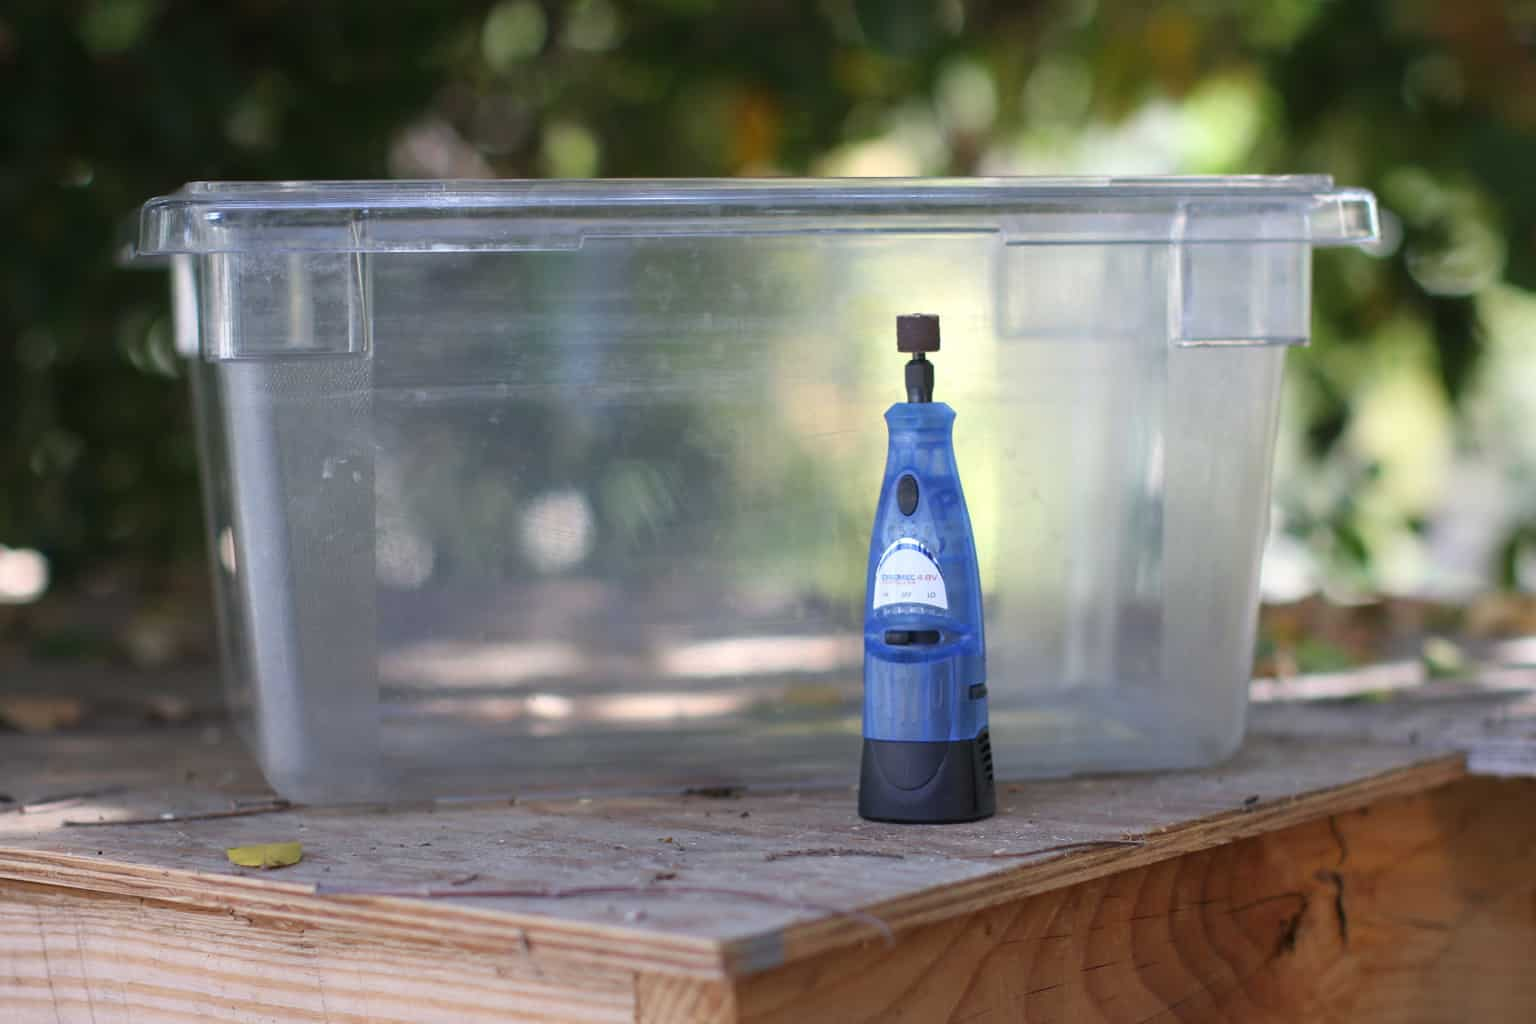 Hard plastic container with a cutting tool